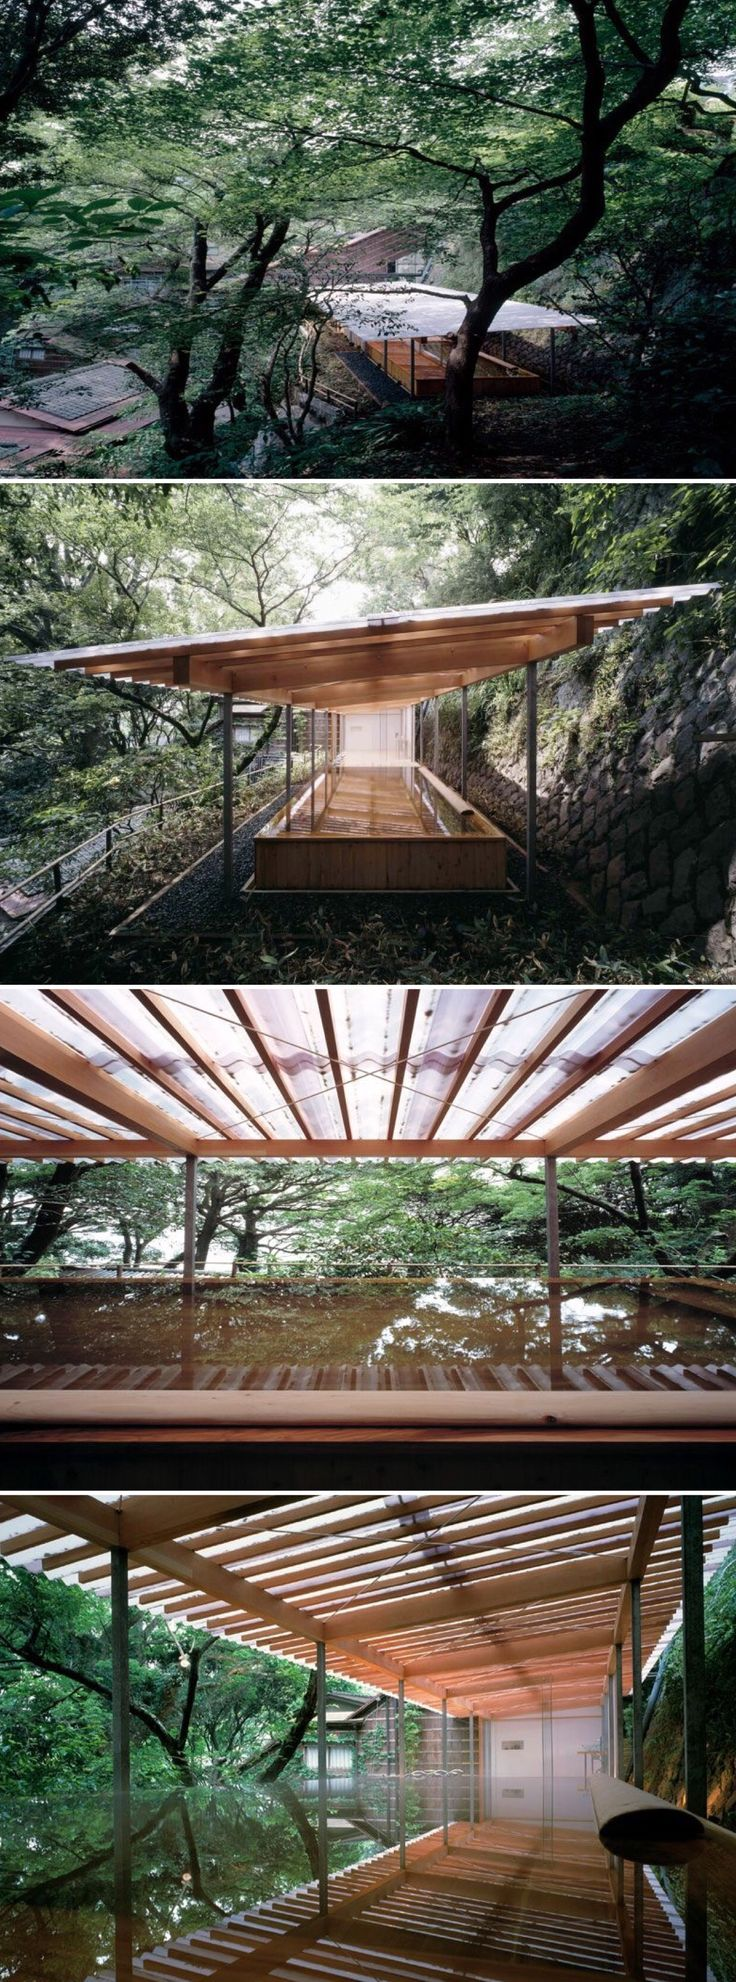 Horai Onsen Bath House / kengo kuma and associates